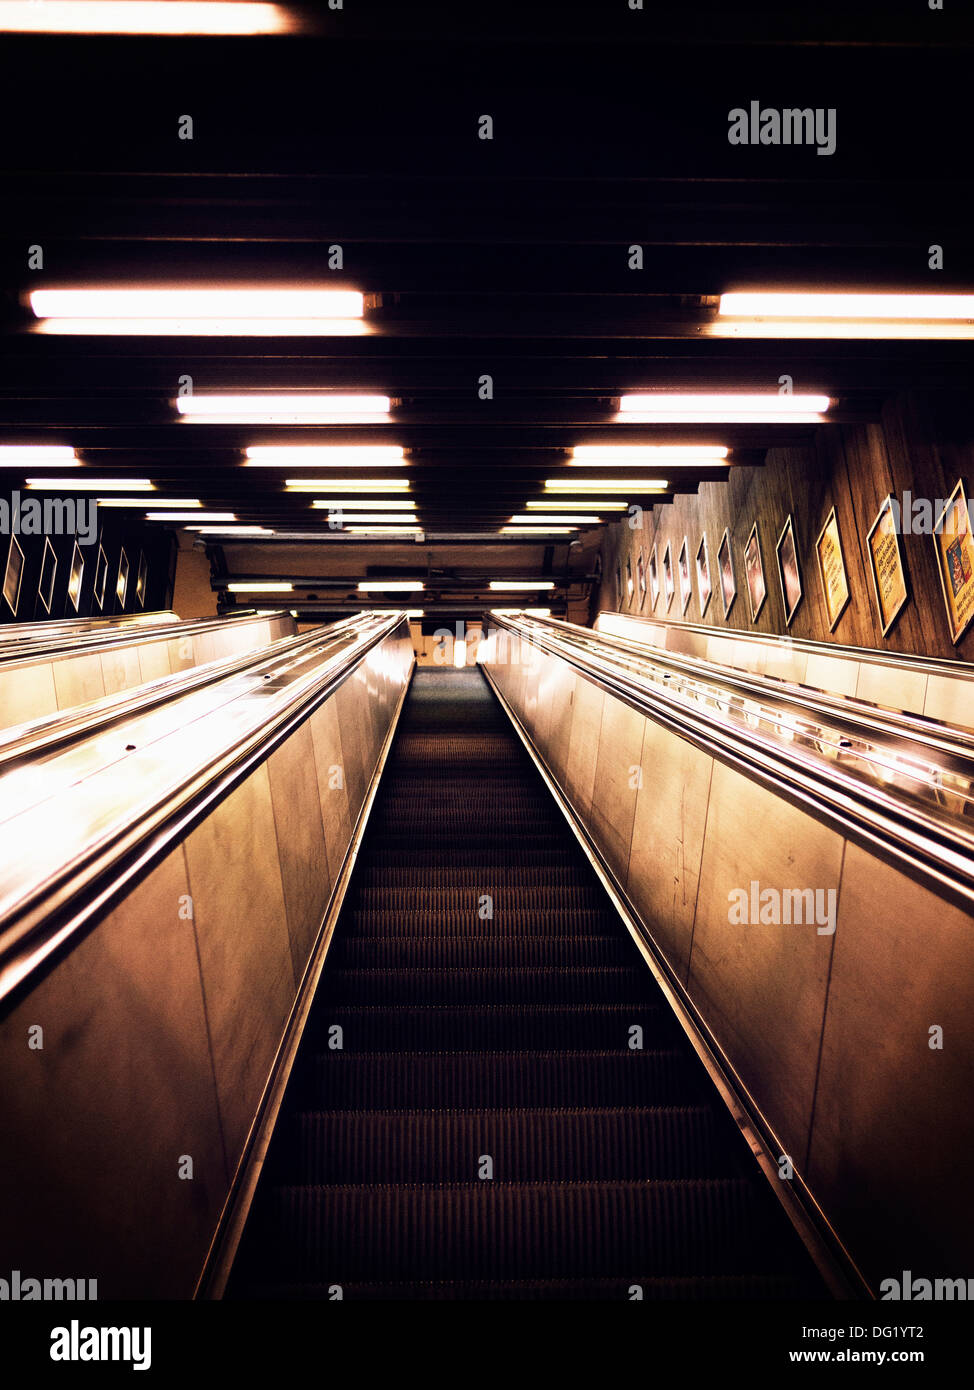 Escalator, Low Angle View Photo Stock